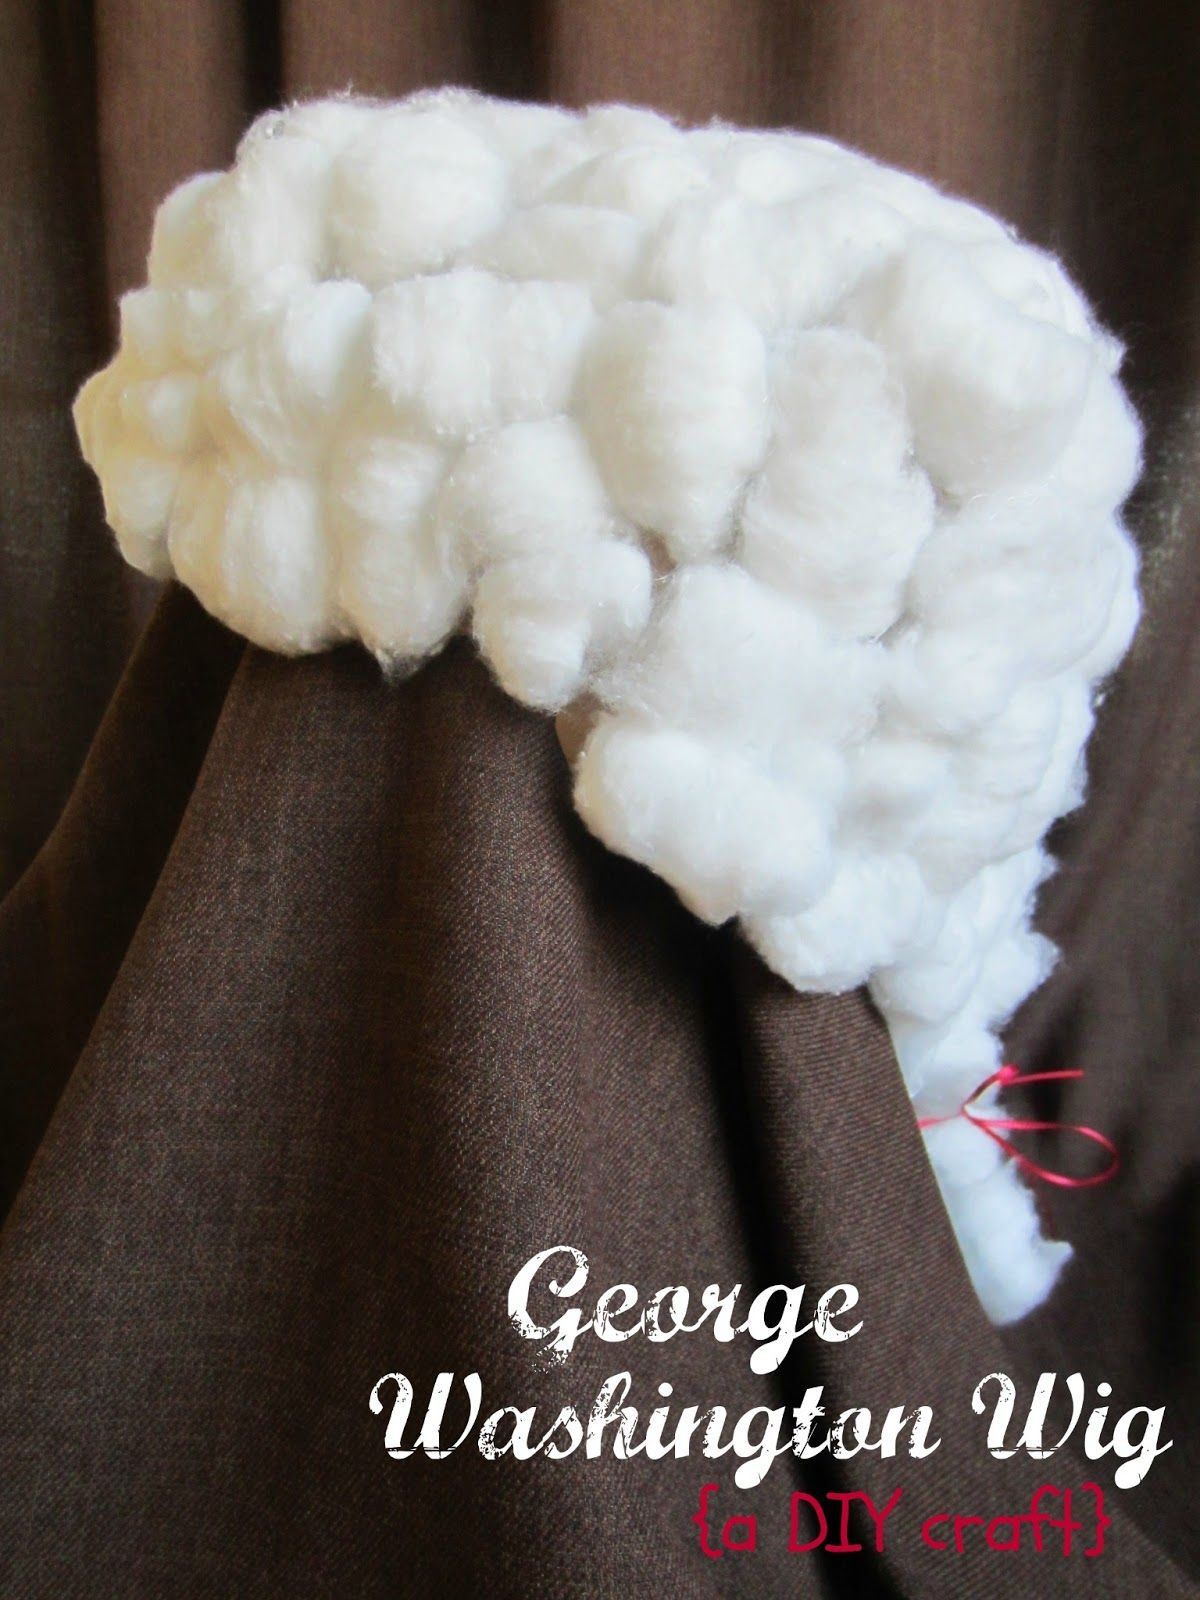 George washington clipart wig. Relentlessly fun deceptively educational